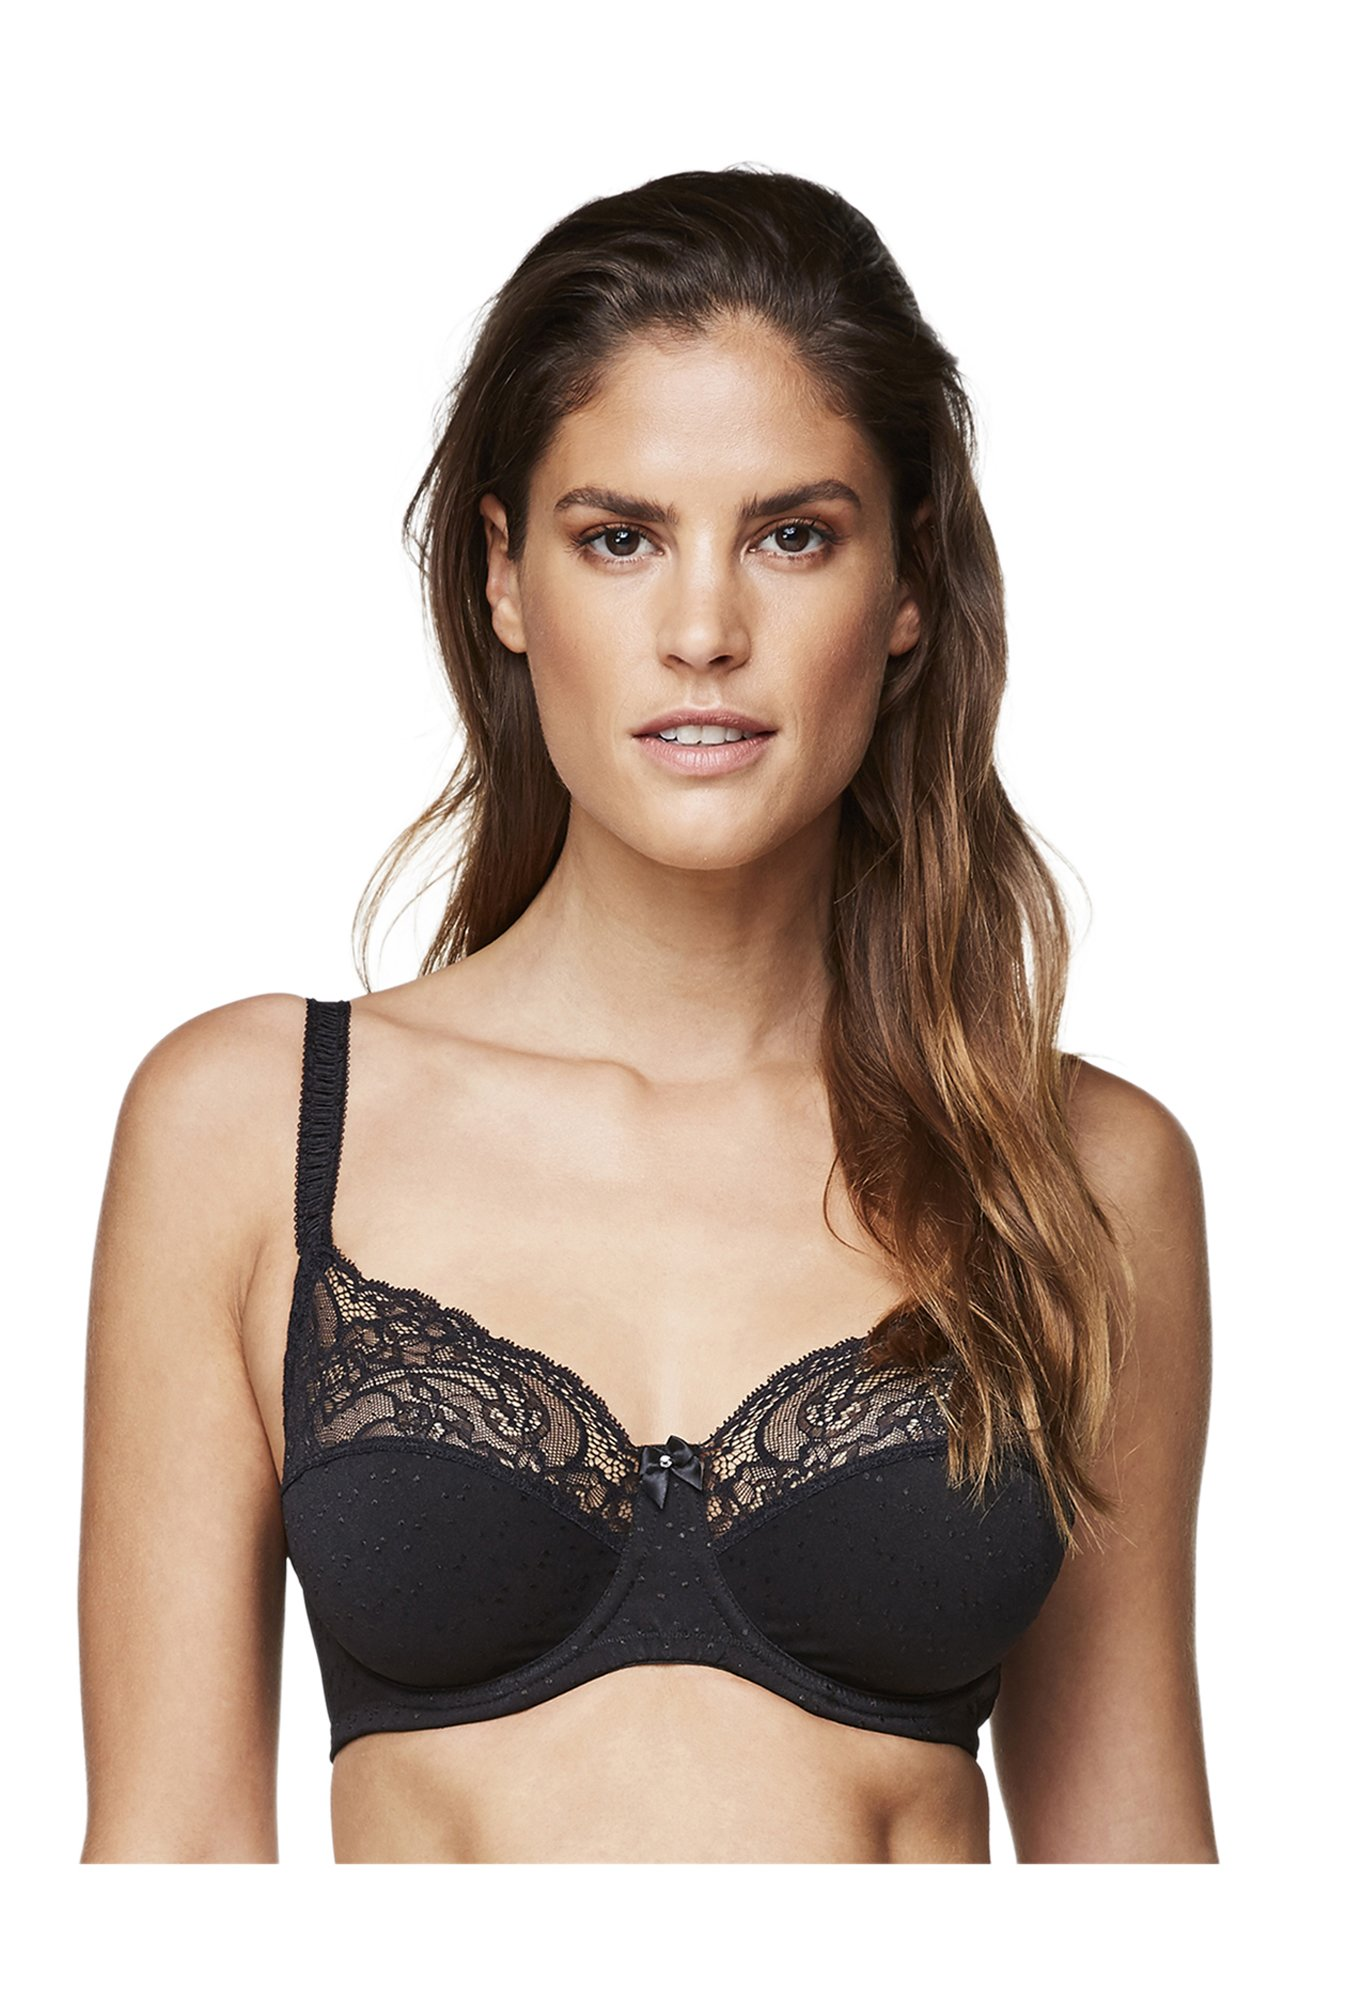 Hunkemoller Black Under Wired Sophie Balconette Bra